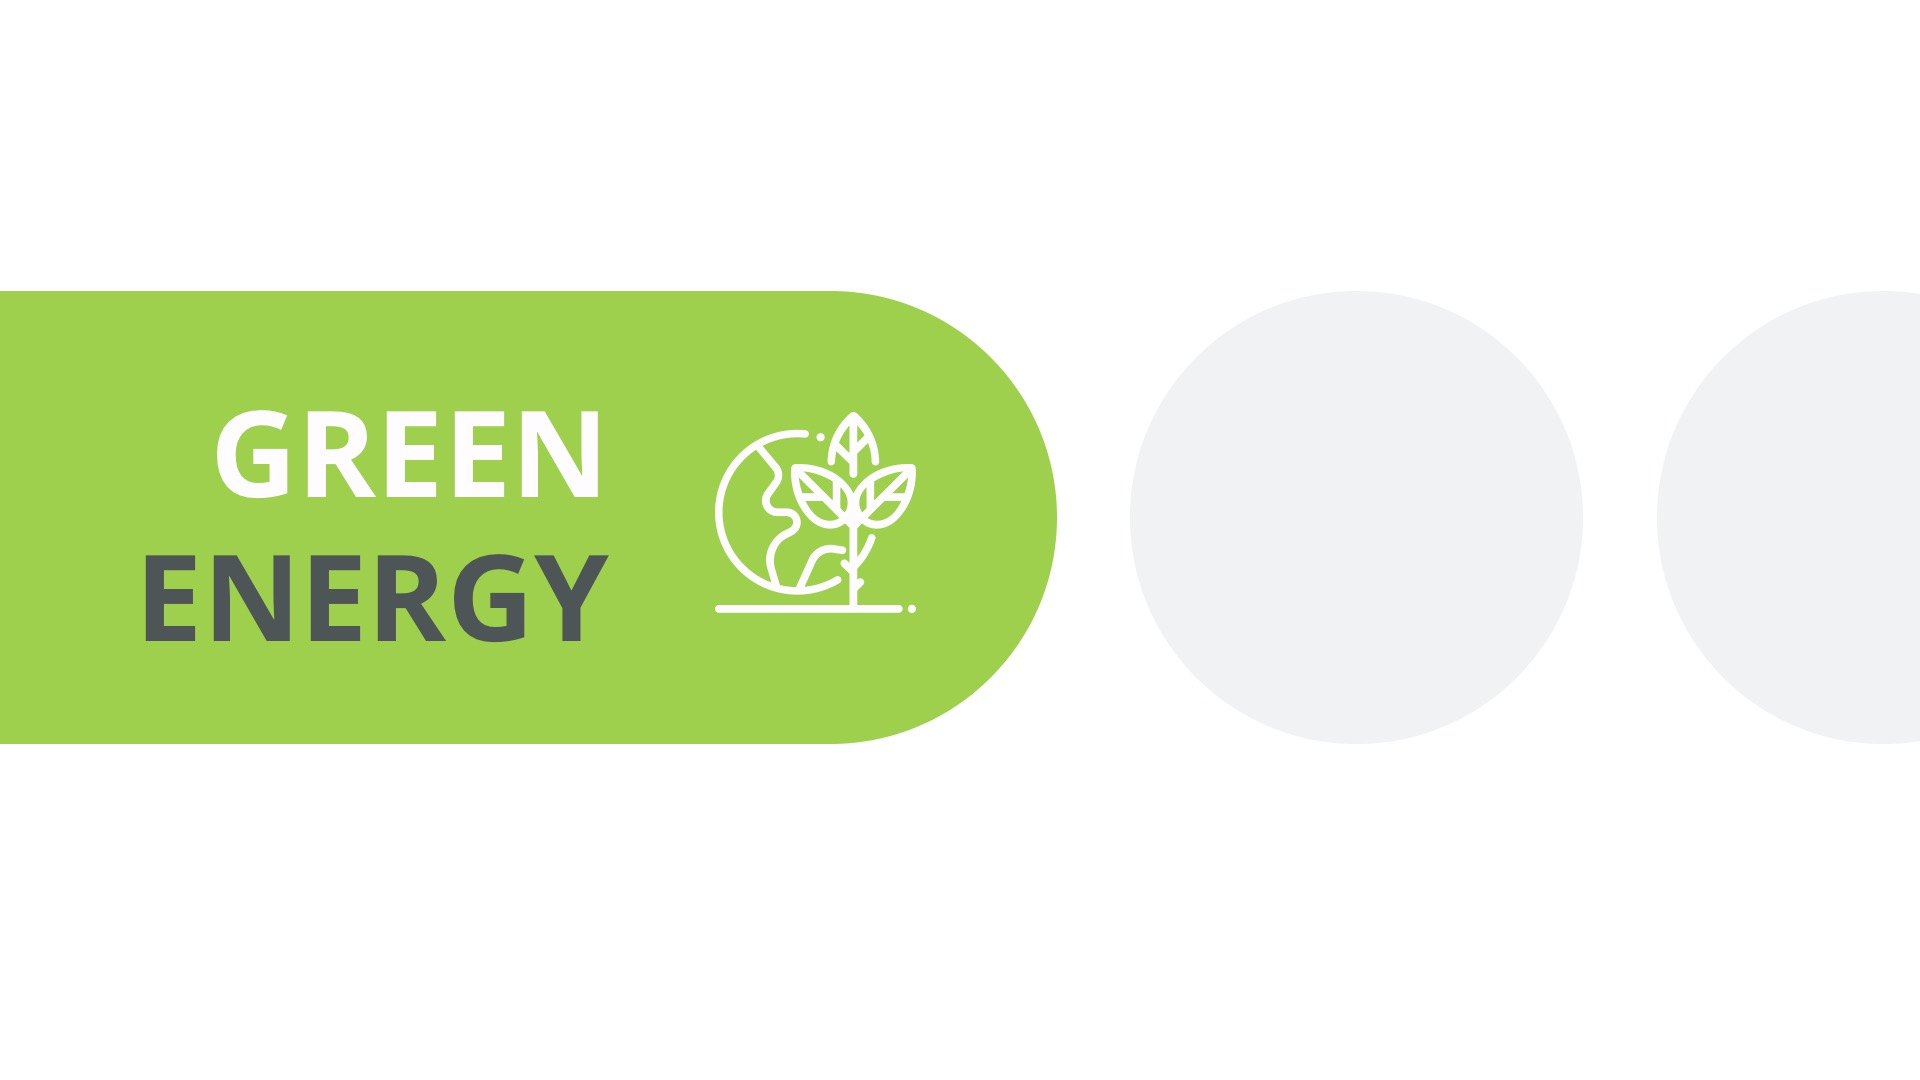 Green energy keynote template by site2max graphicriver green energy keynote template nature keynote templates slide01g slide02g slide03g slide04g toneelgroepblik Images